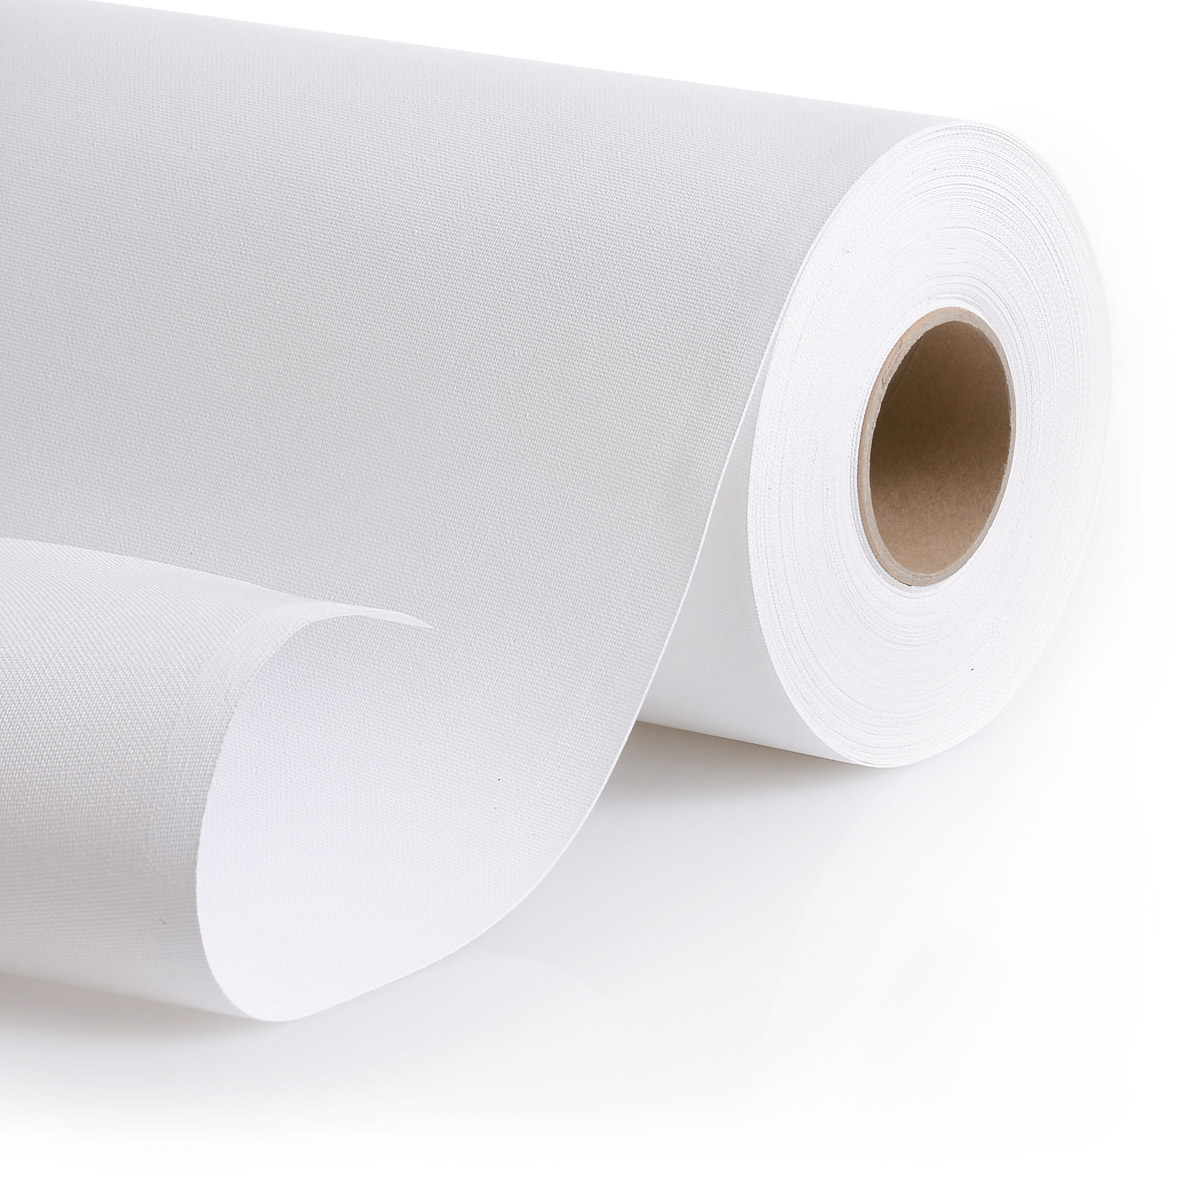 1 Rolle Cotton Inkjet Canvas | Leinwand | 360M | 61 x 18m